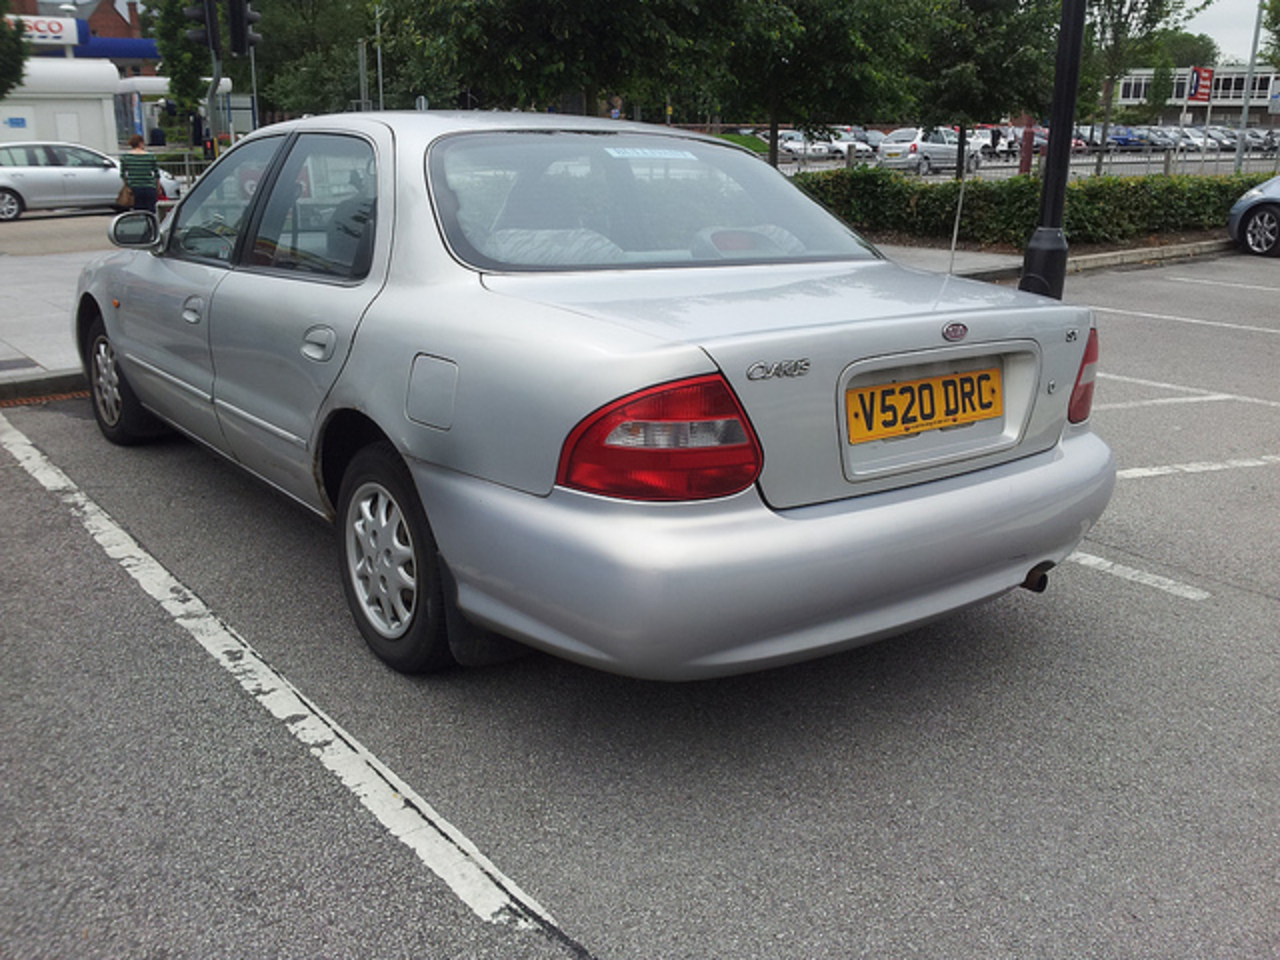 1999 Kia Clarus 1.8 SX Auto | Flickr - Photo Sharing!